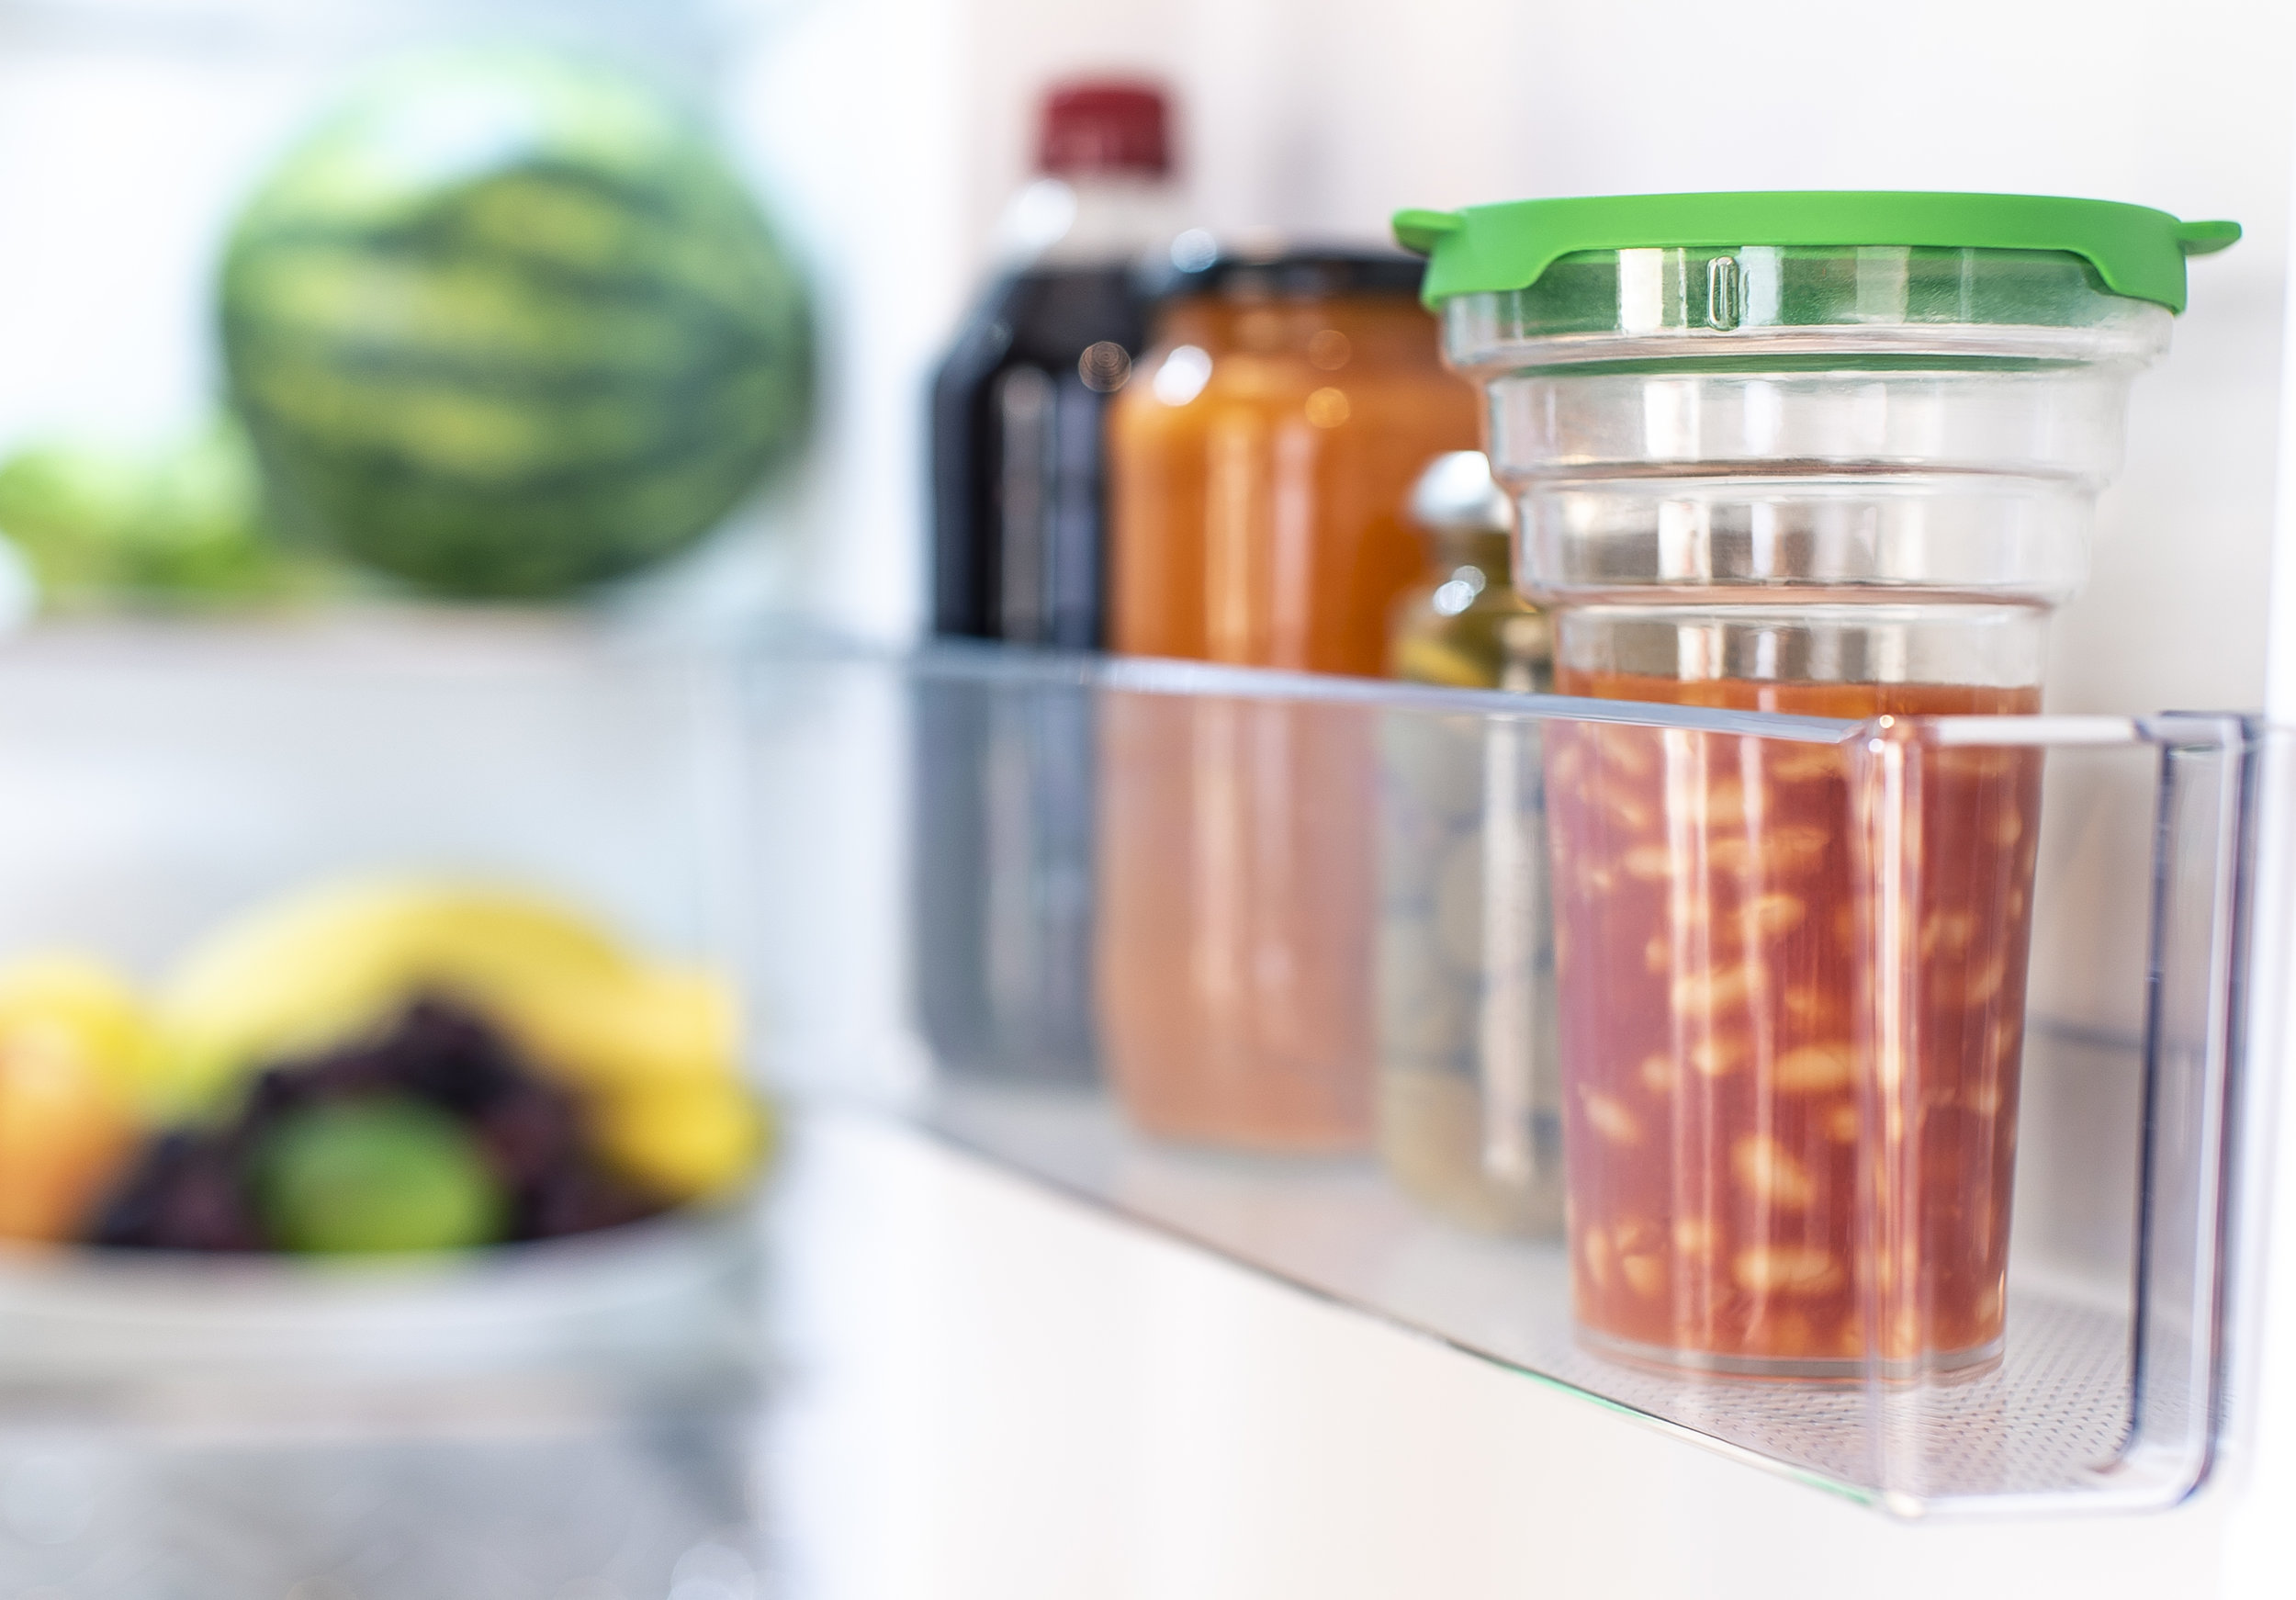 Shake n' Store is a simple way to manage your leftover food. - Shake n' Store is a clear upright food container, ridged at the top to cope with the three most common sizes of can, and with a lid that can be twisted to mark the day of the week on which the leftovers were stored in the fridge.You place the Shake n' Store onto the open tin, turn both over like a cocktail shaker, and simply shake the leftover food into the container. Clean transfer, no spillage, brilliantly simple!